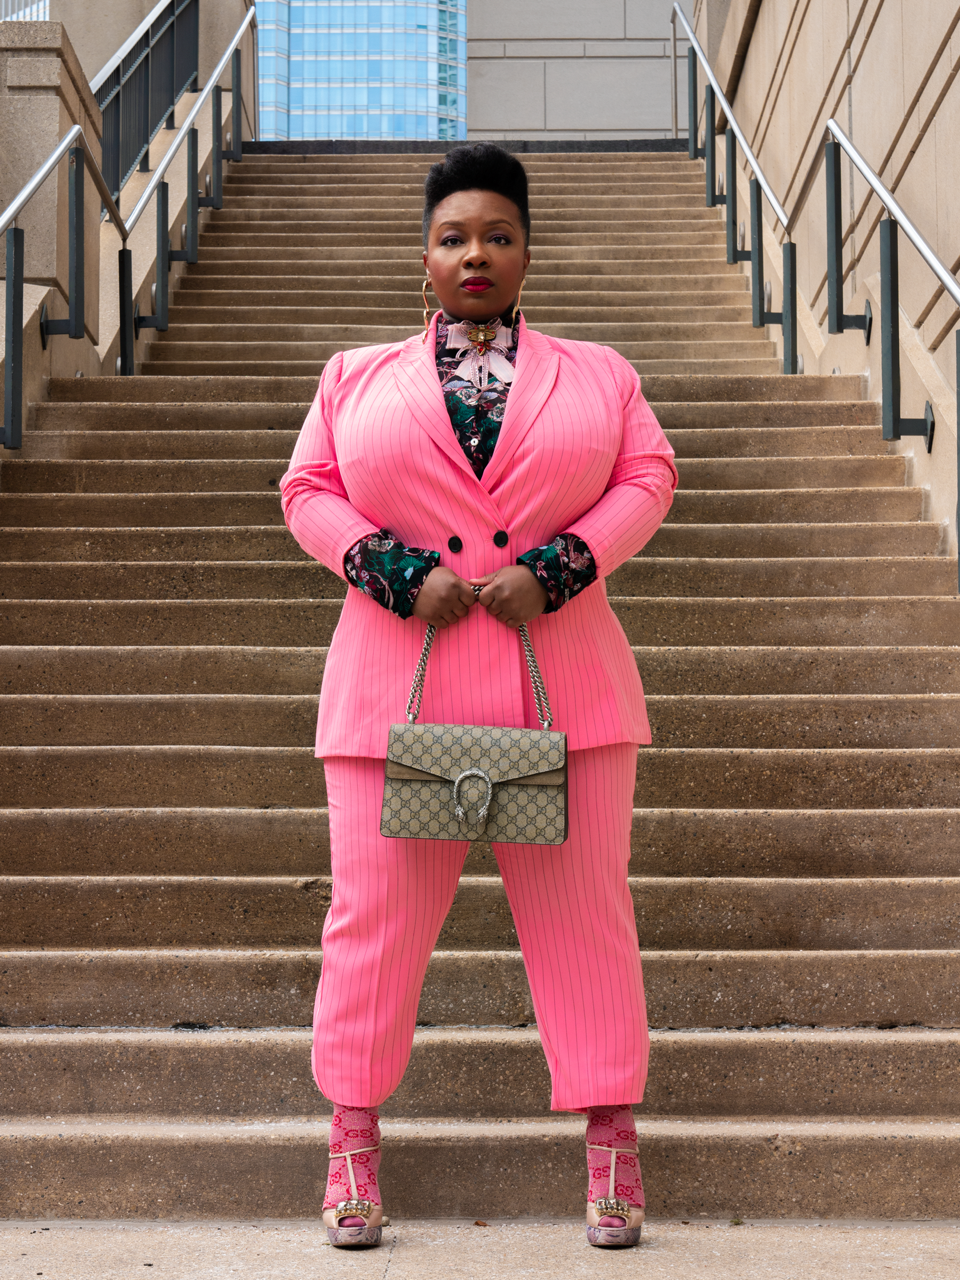 Fashion Bombshell of the Day: Shenell from Illinois